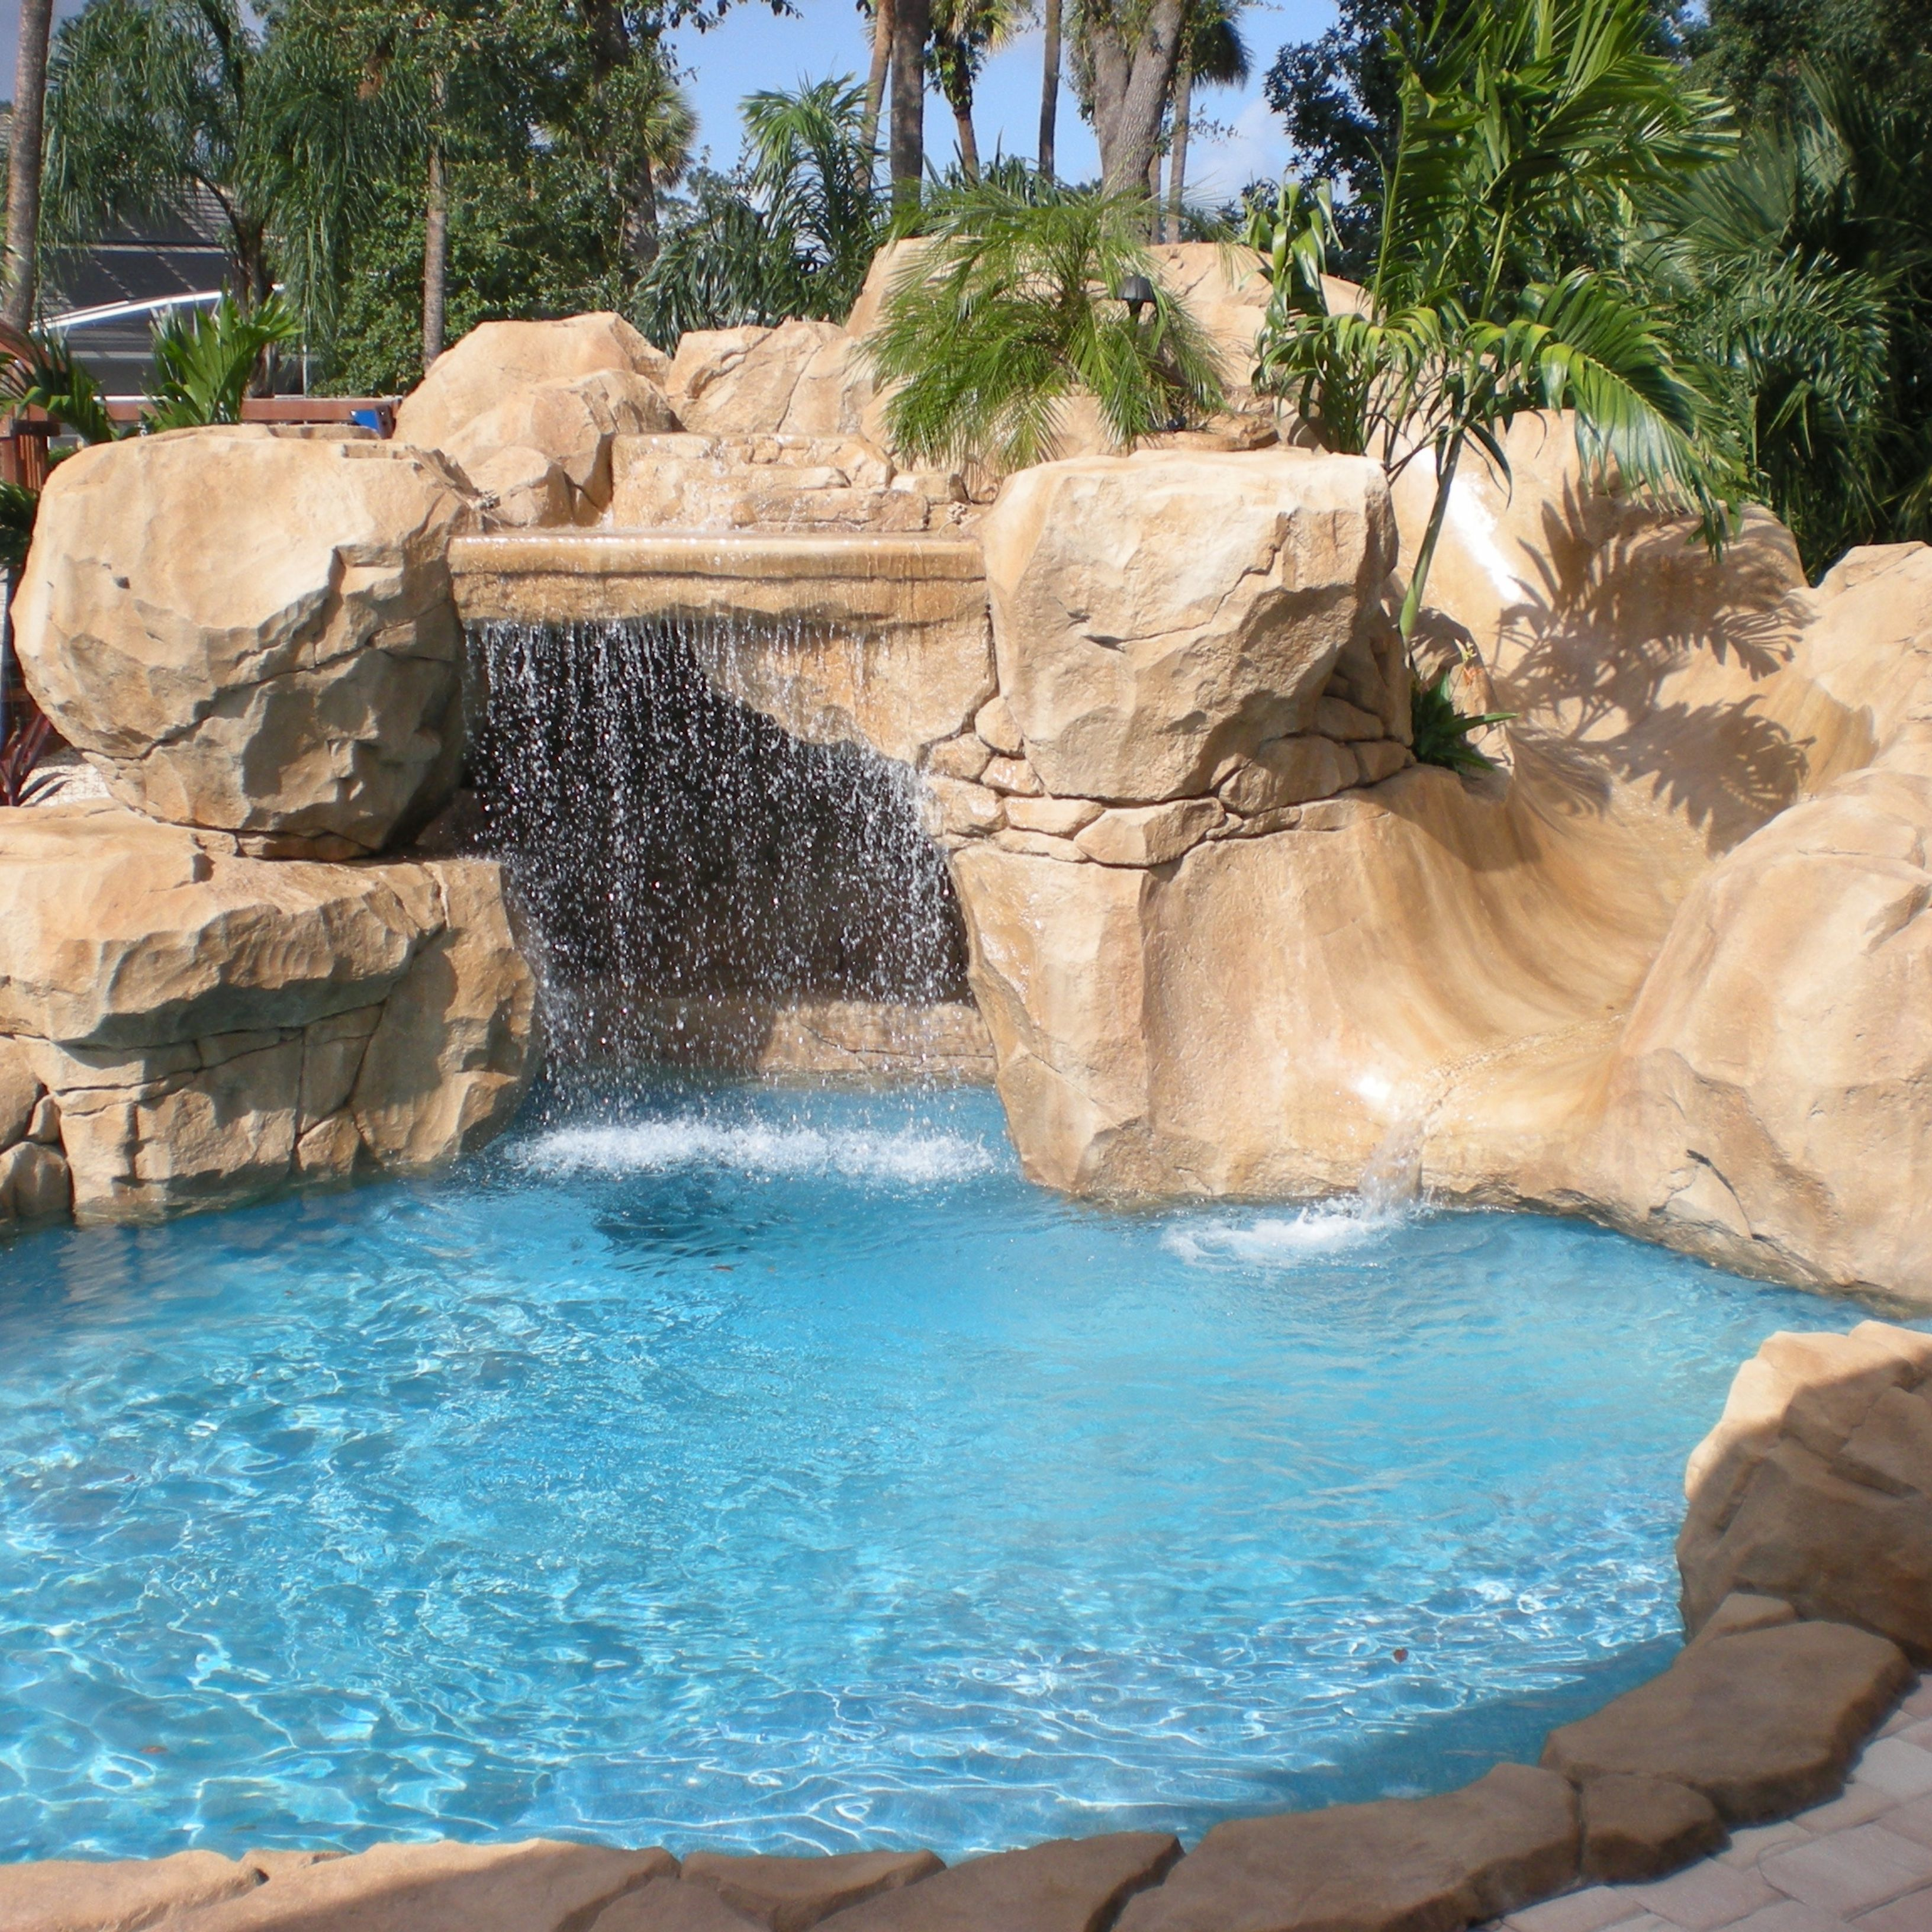 What Better Way To Have Fun In The Sun With A Refreshing Pool